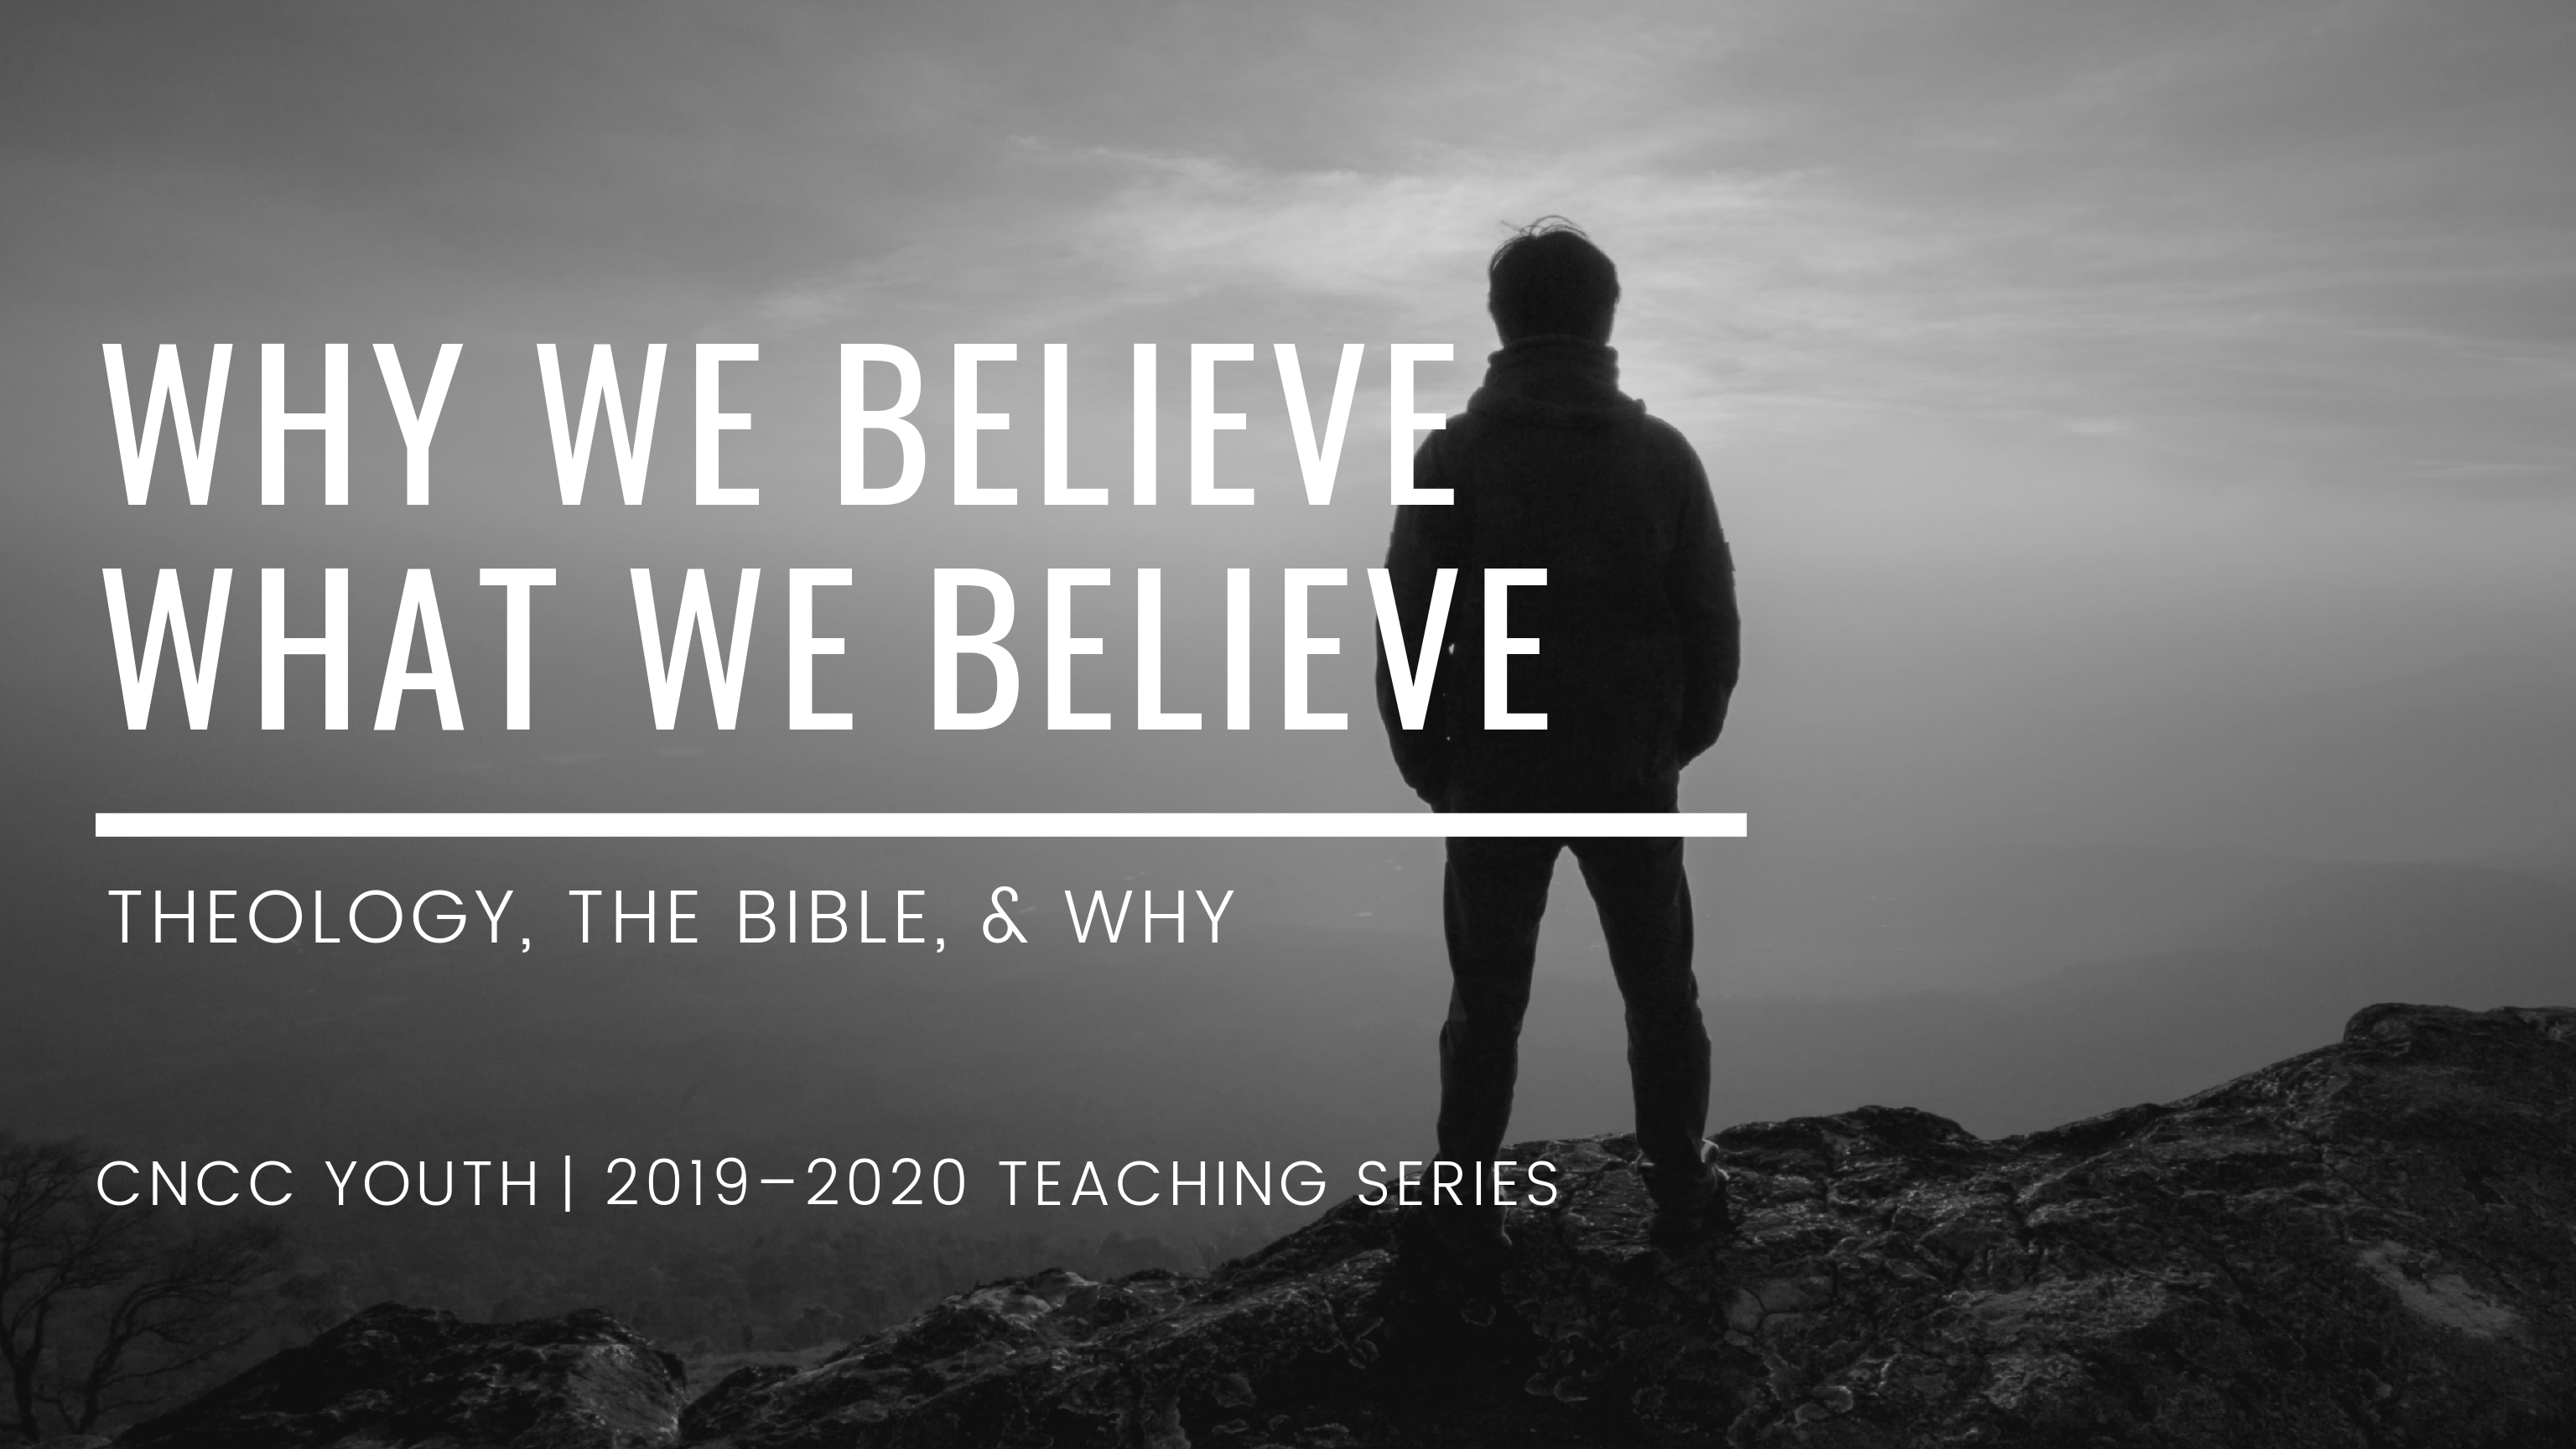 Why We Believe What We Believe 16 9 Logo